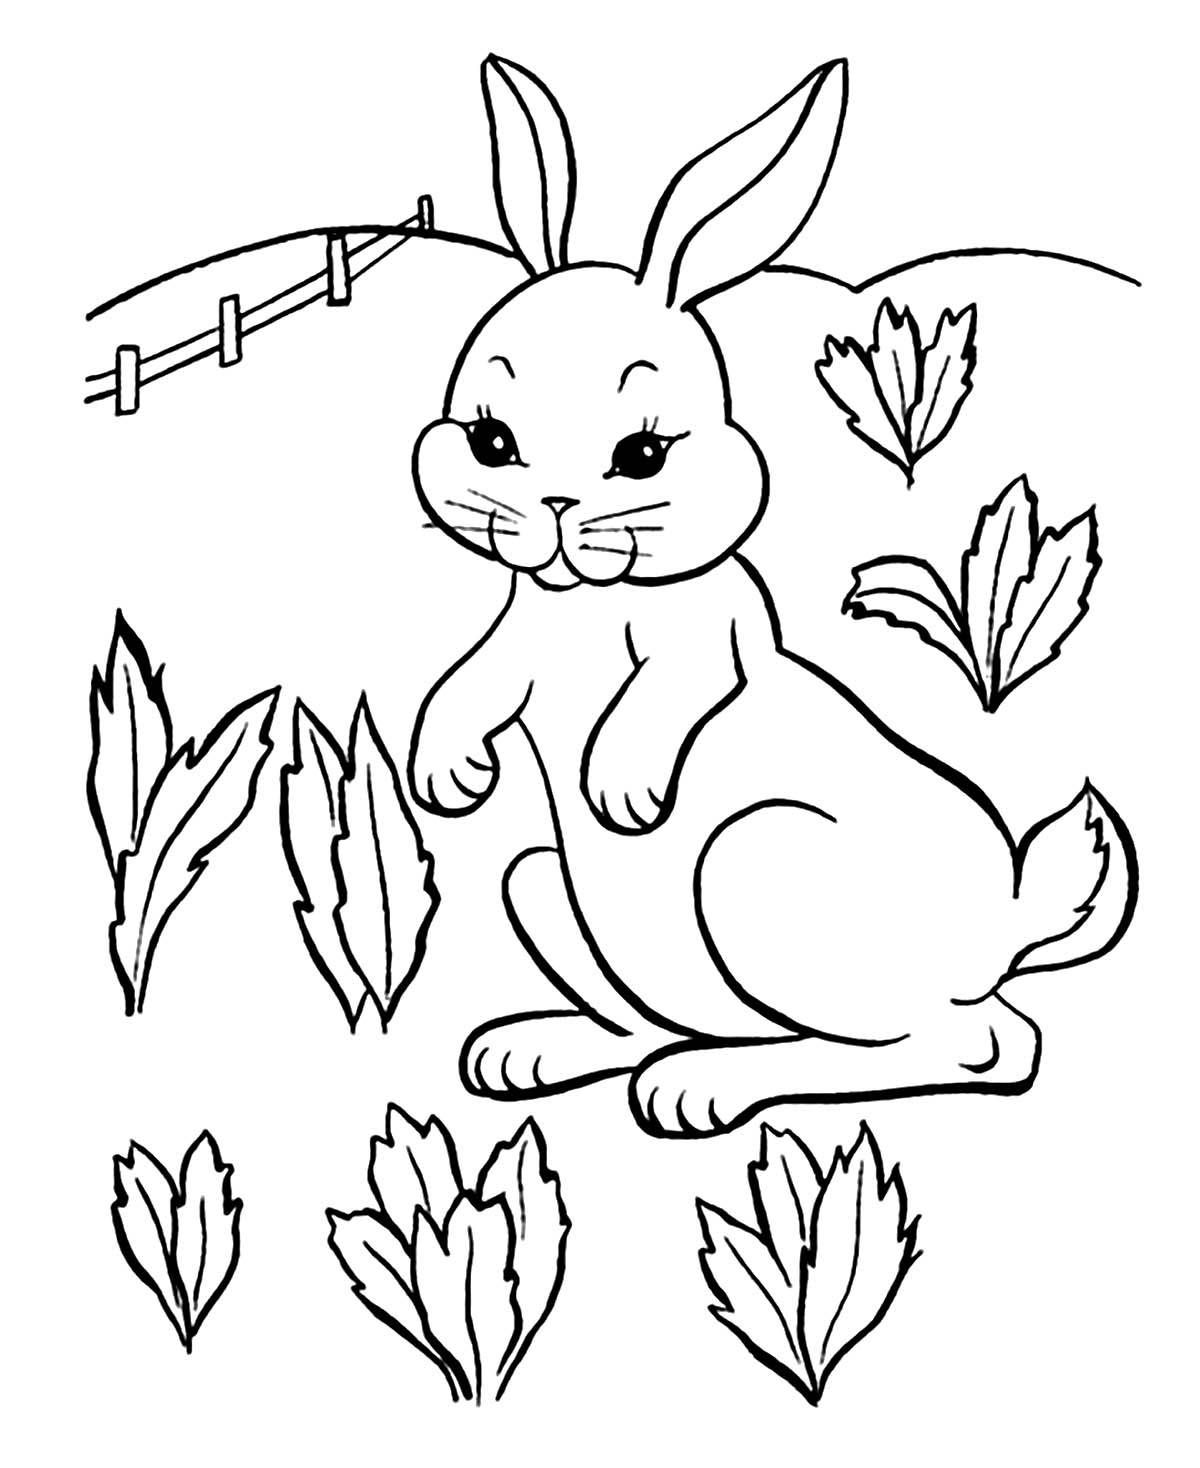 rabbit pictures for kids for colouring rabbit to color for kids rabbit kids coloring pages for for colouring pictures kids rabbit